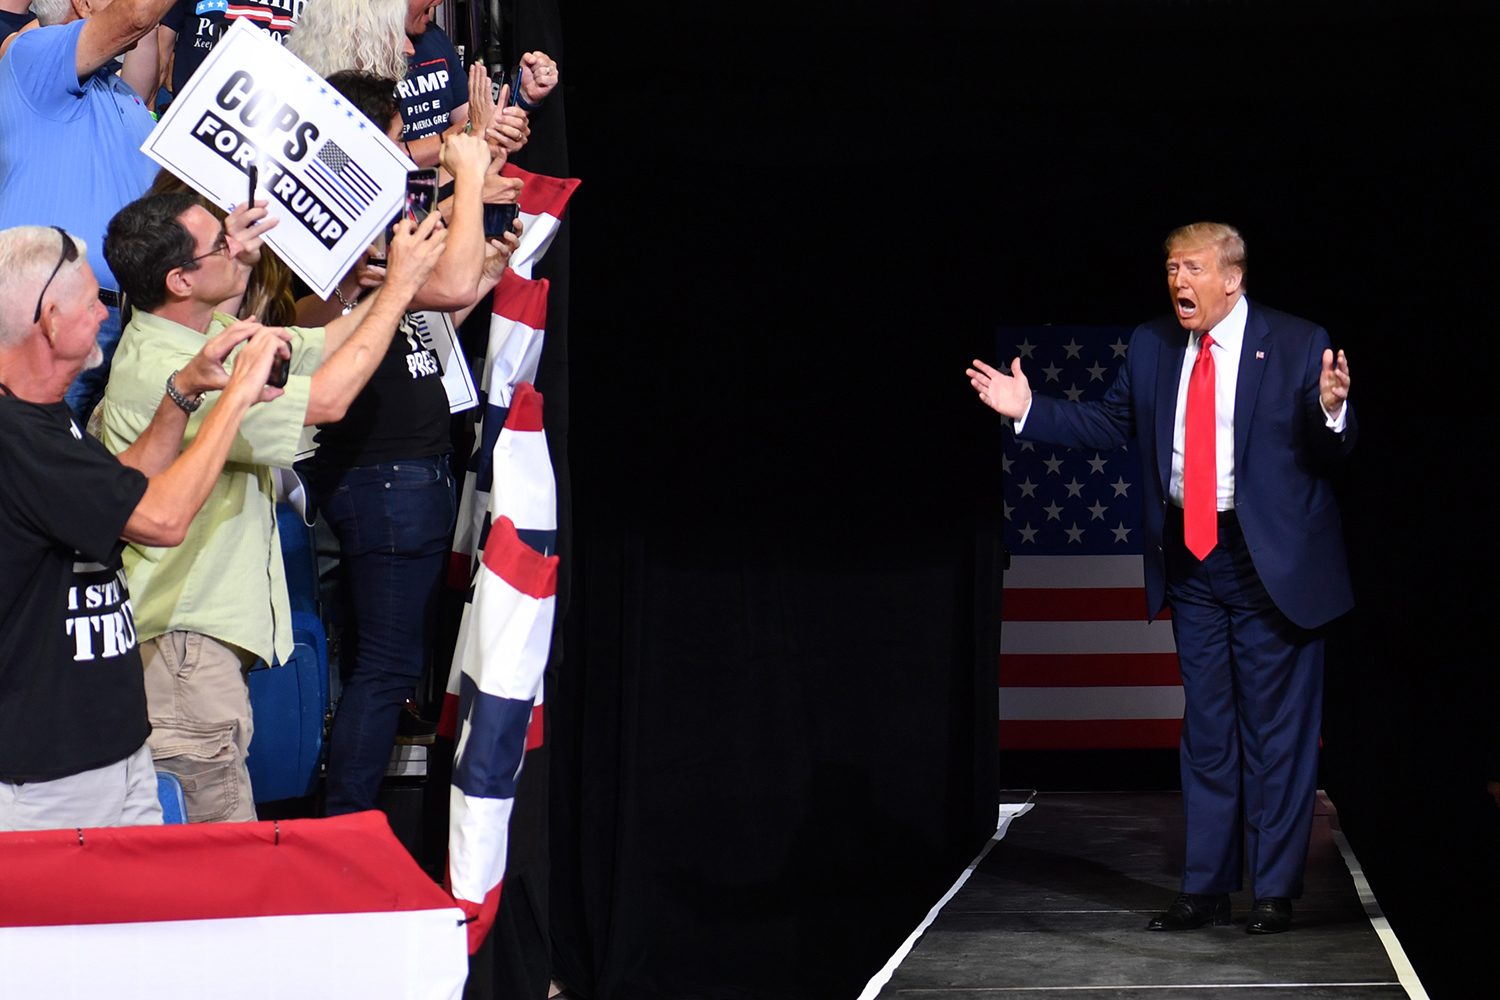 U.S. President Donald Trump arrives for a campaign rally at the BOK Center in Tulsa, Oklahoma, on June 20. It was his first political rally since the beginning of the pandemic. NICHOLAS KAMM/AFP via Getty Images